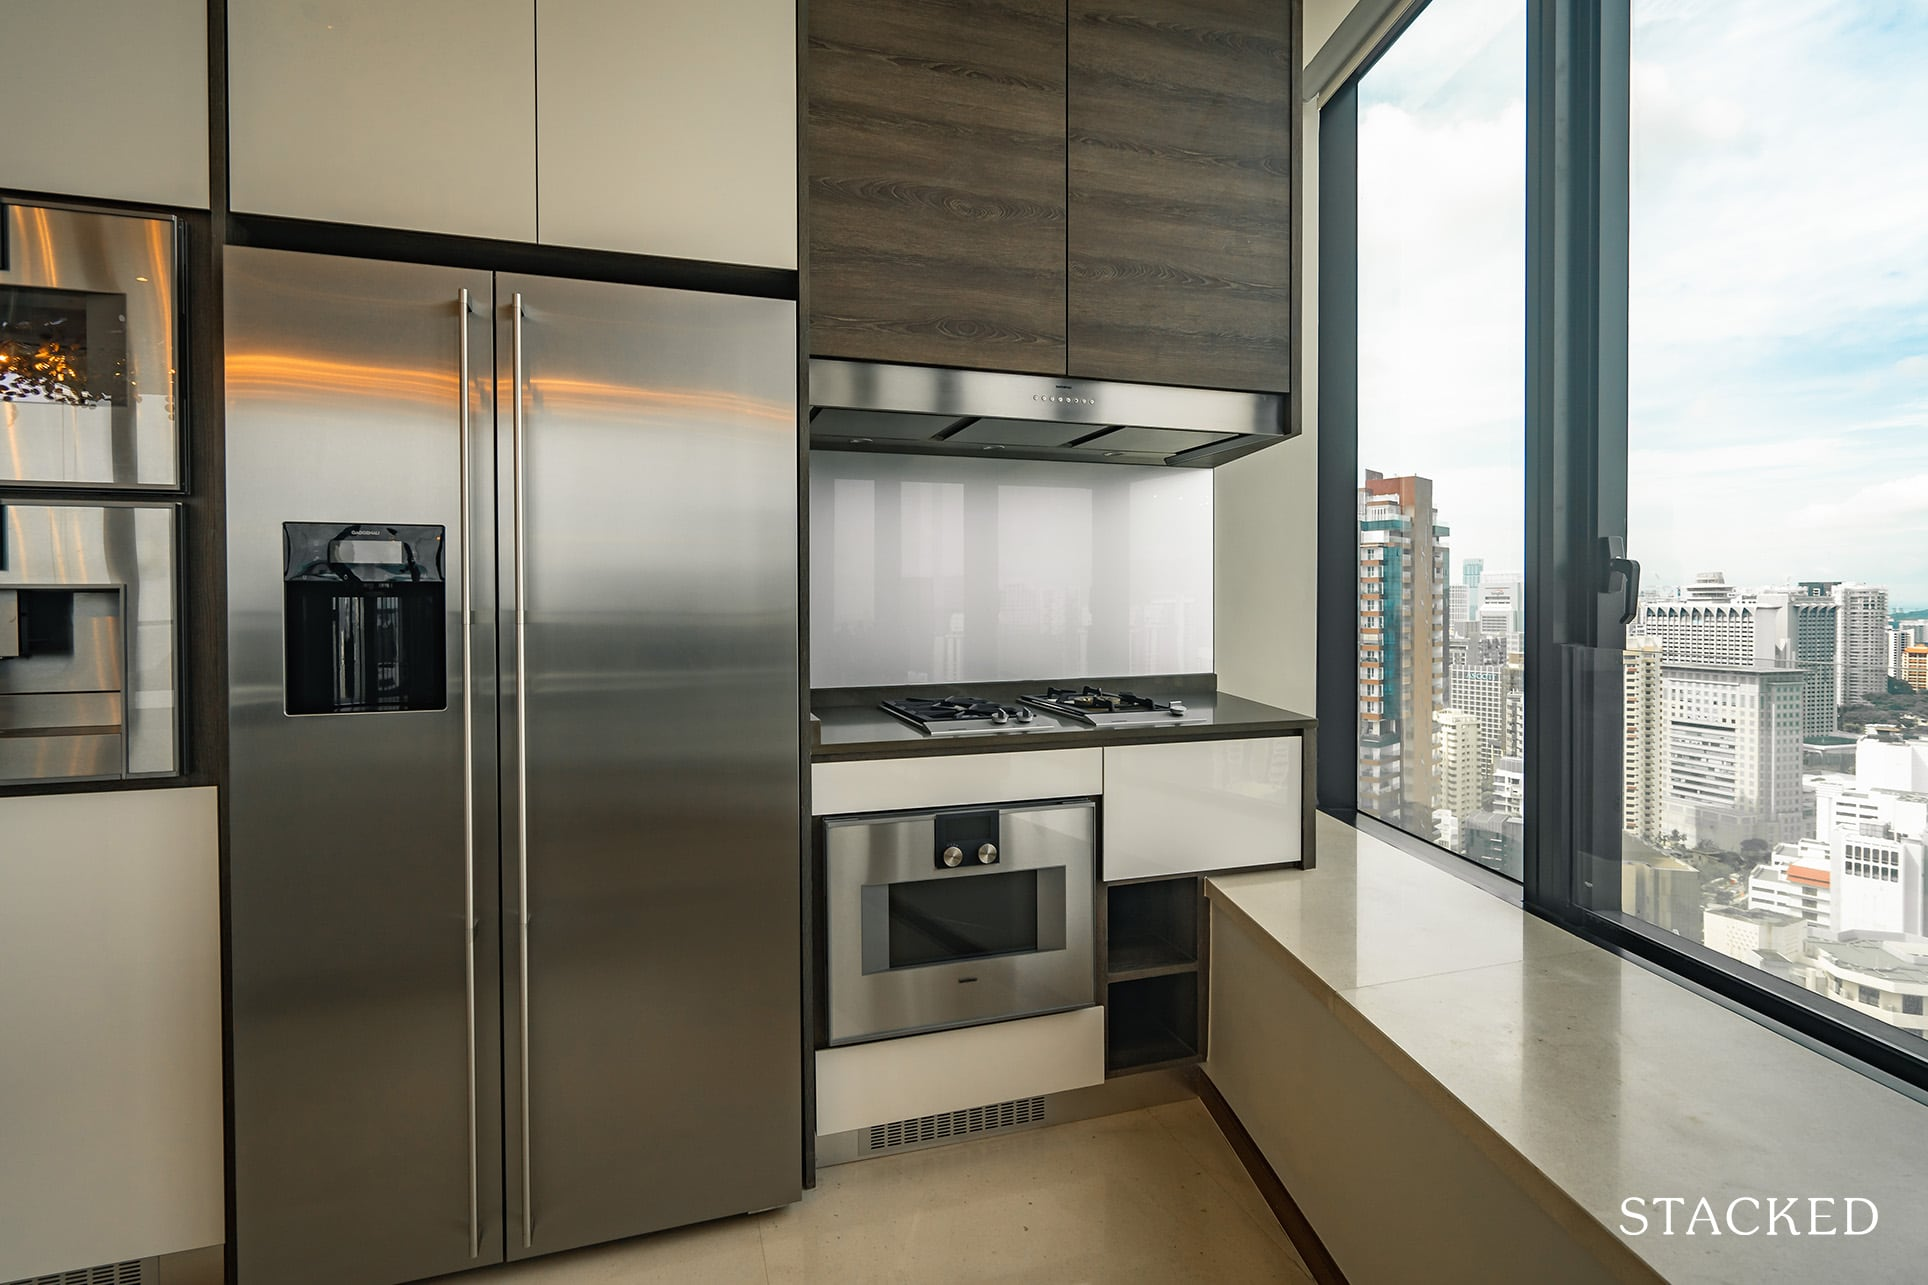 the Scotts tower 3 bedroom kitchen